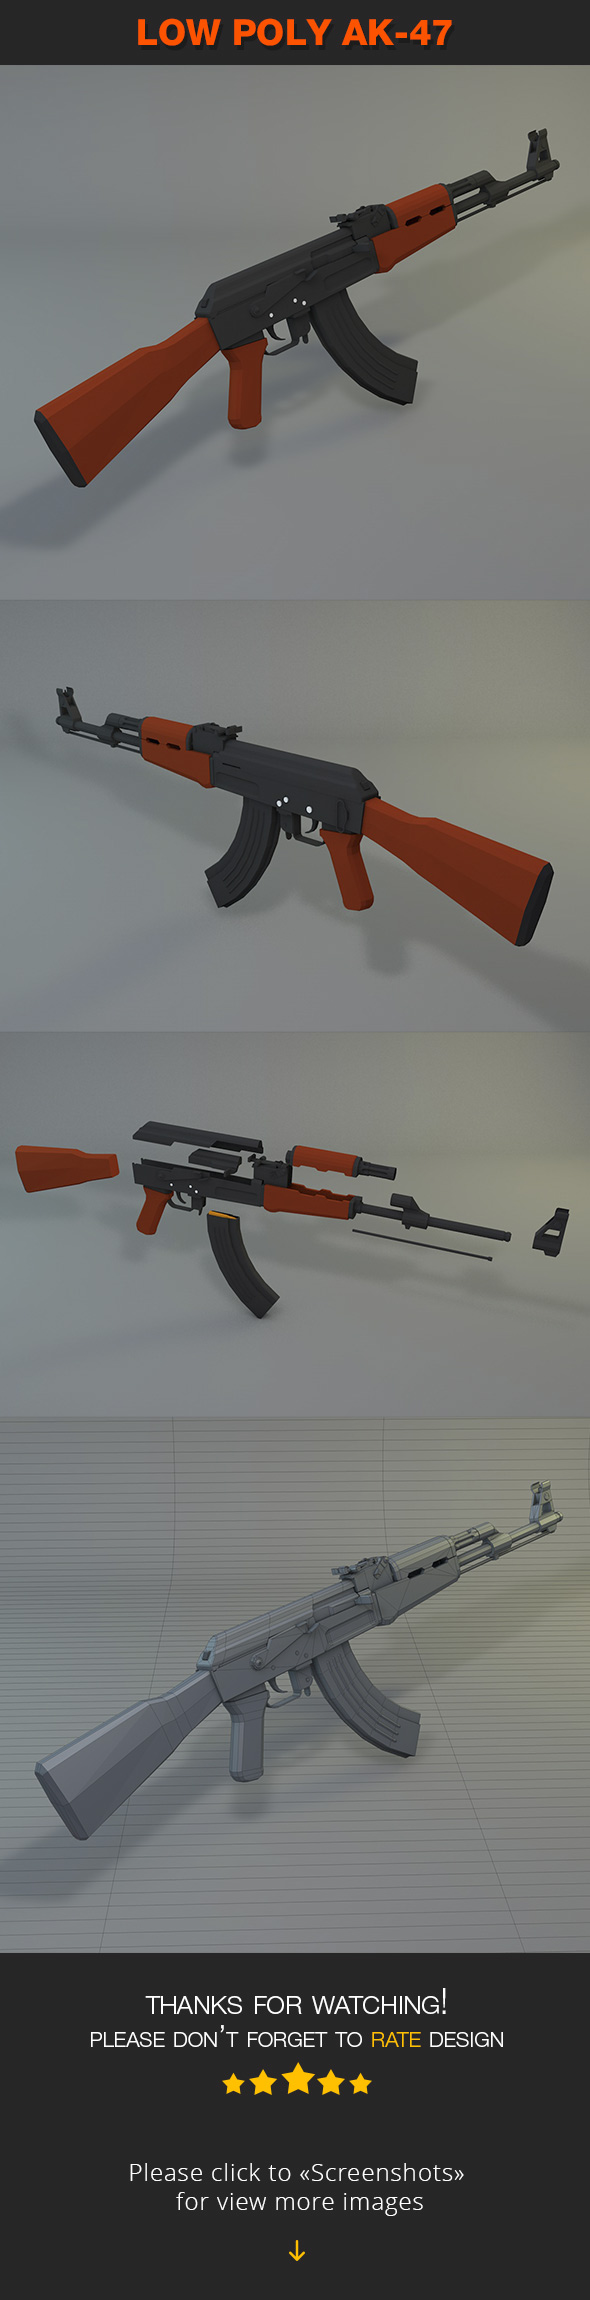 Low Poly AK-47 - 3DOcean Item for Sale